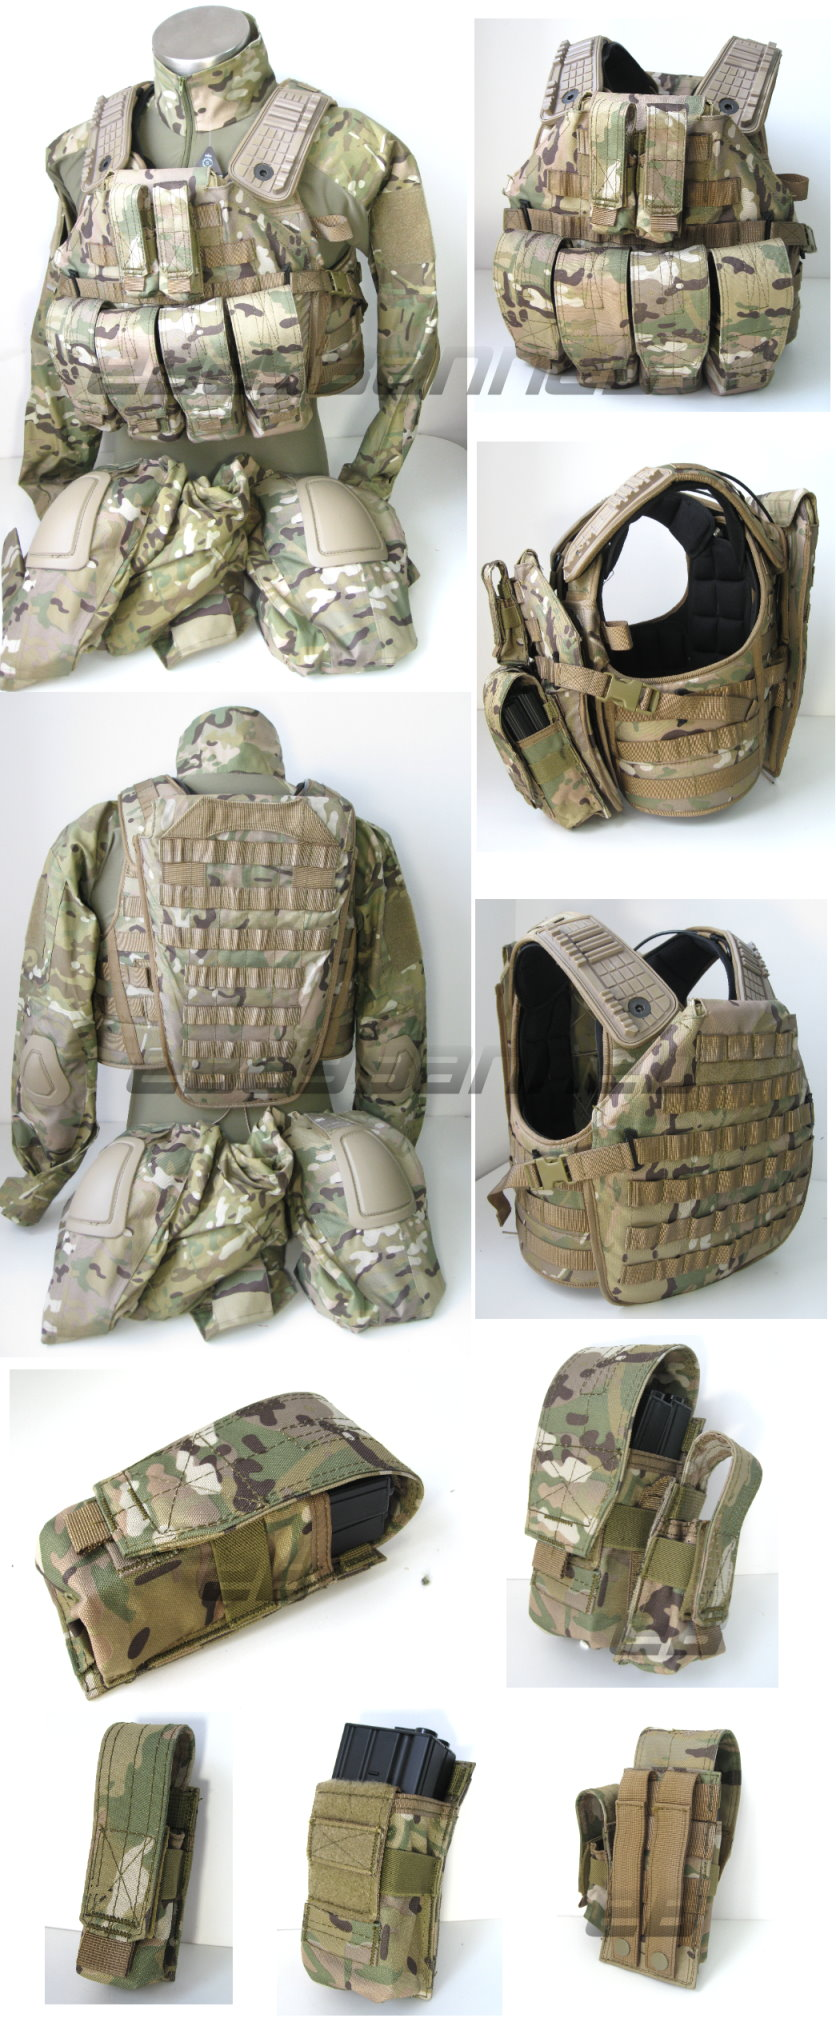 MC%20armor%20replica%201.jpg